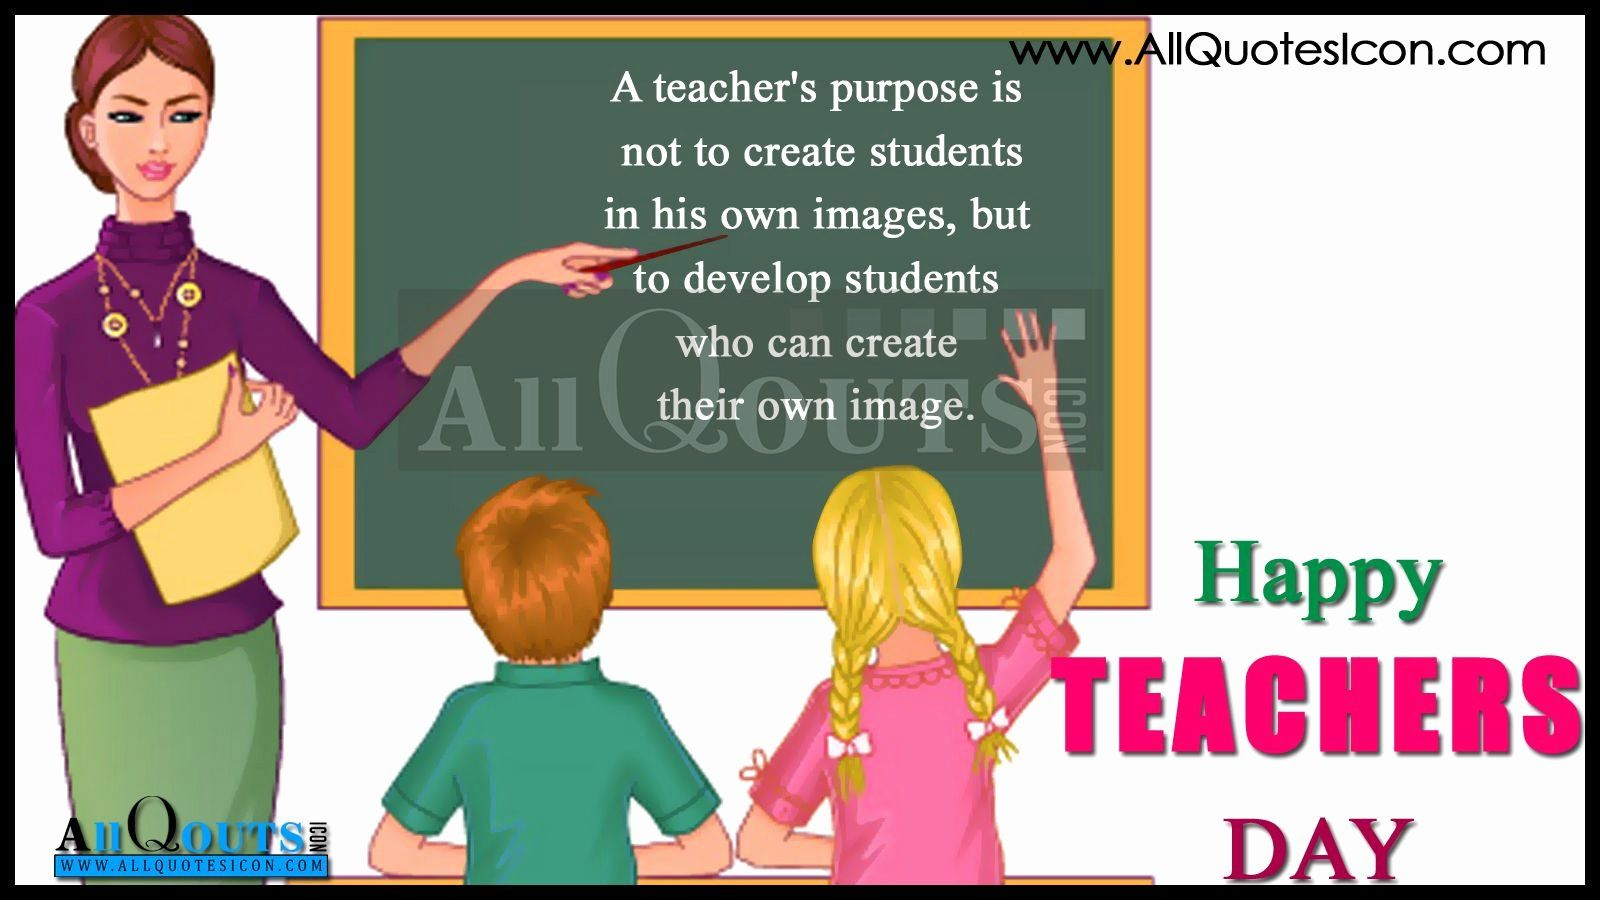 Teacher Day Card Elegant Teacher Day Messages Puzzles In 2020 Teachers Day Message Teachers Day Wishes Teachers Day Card